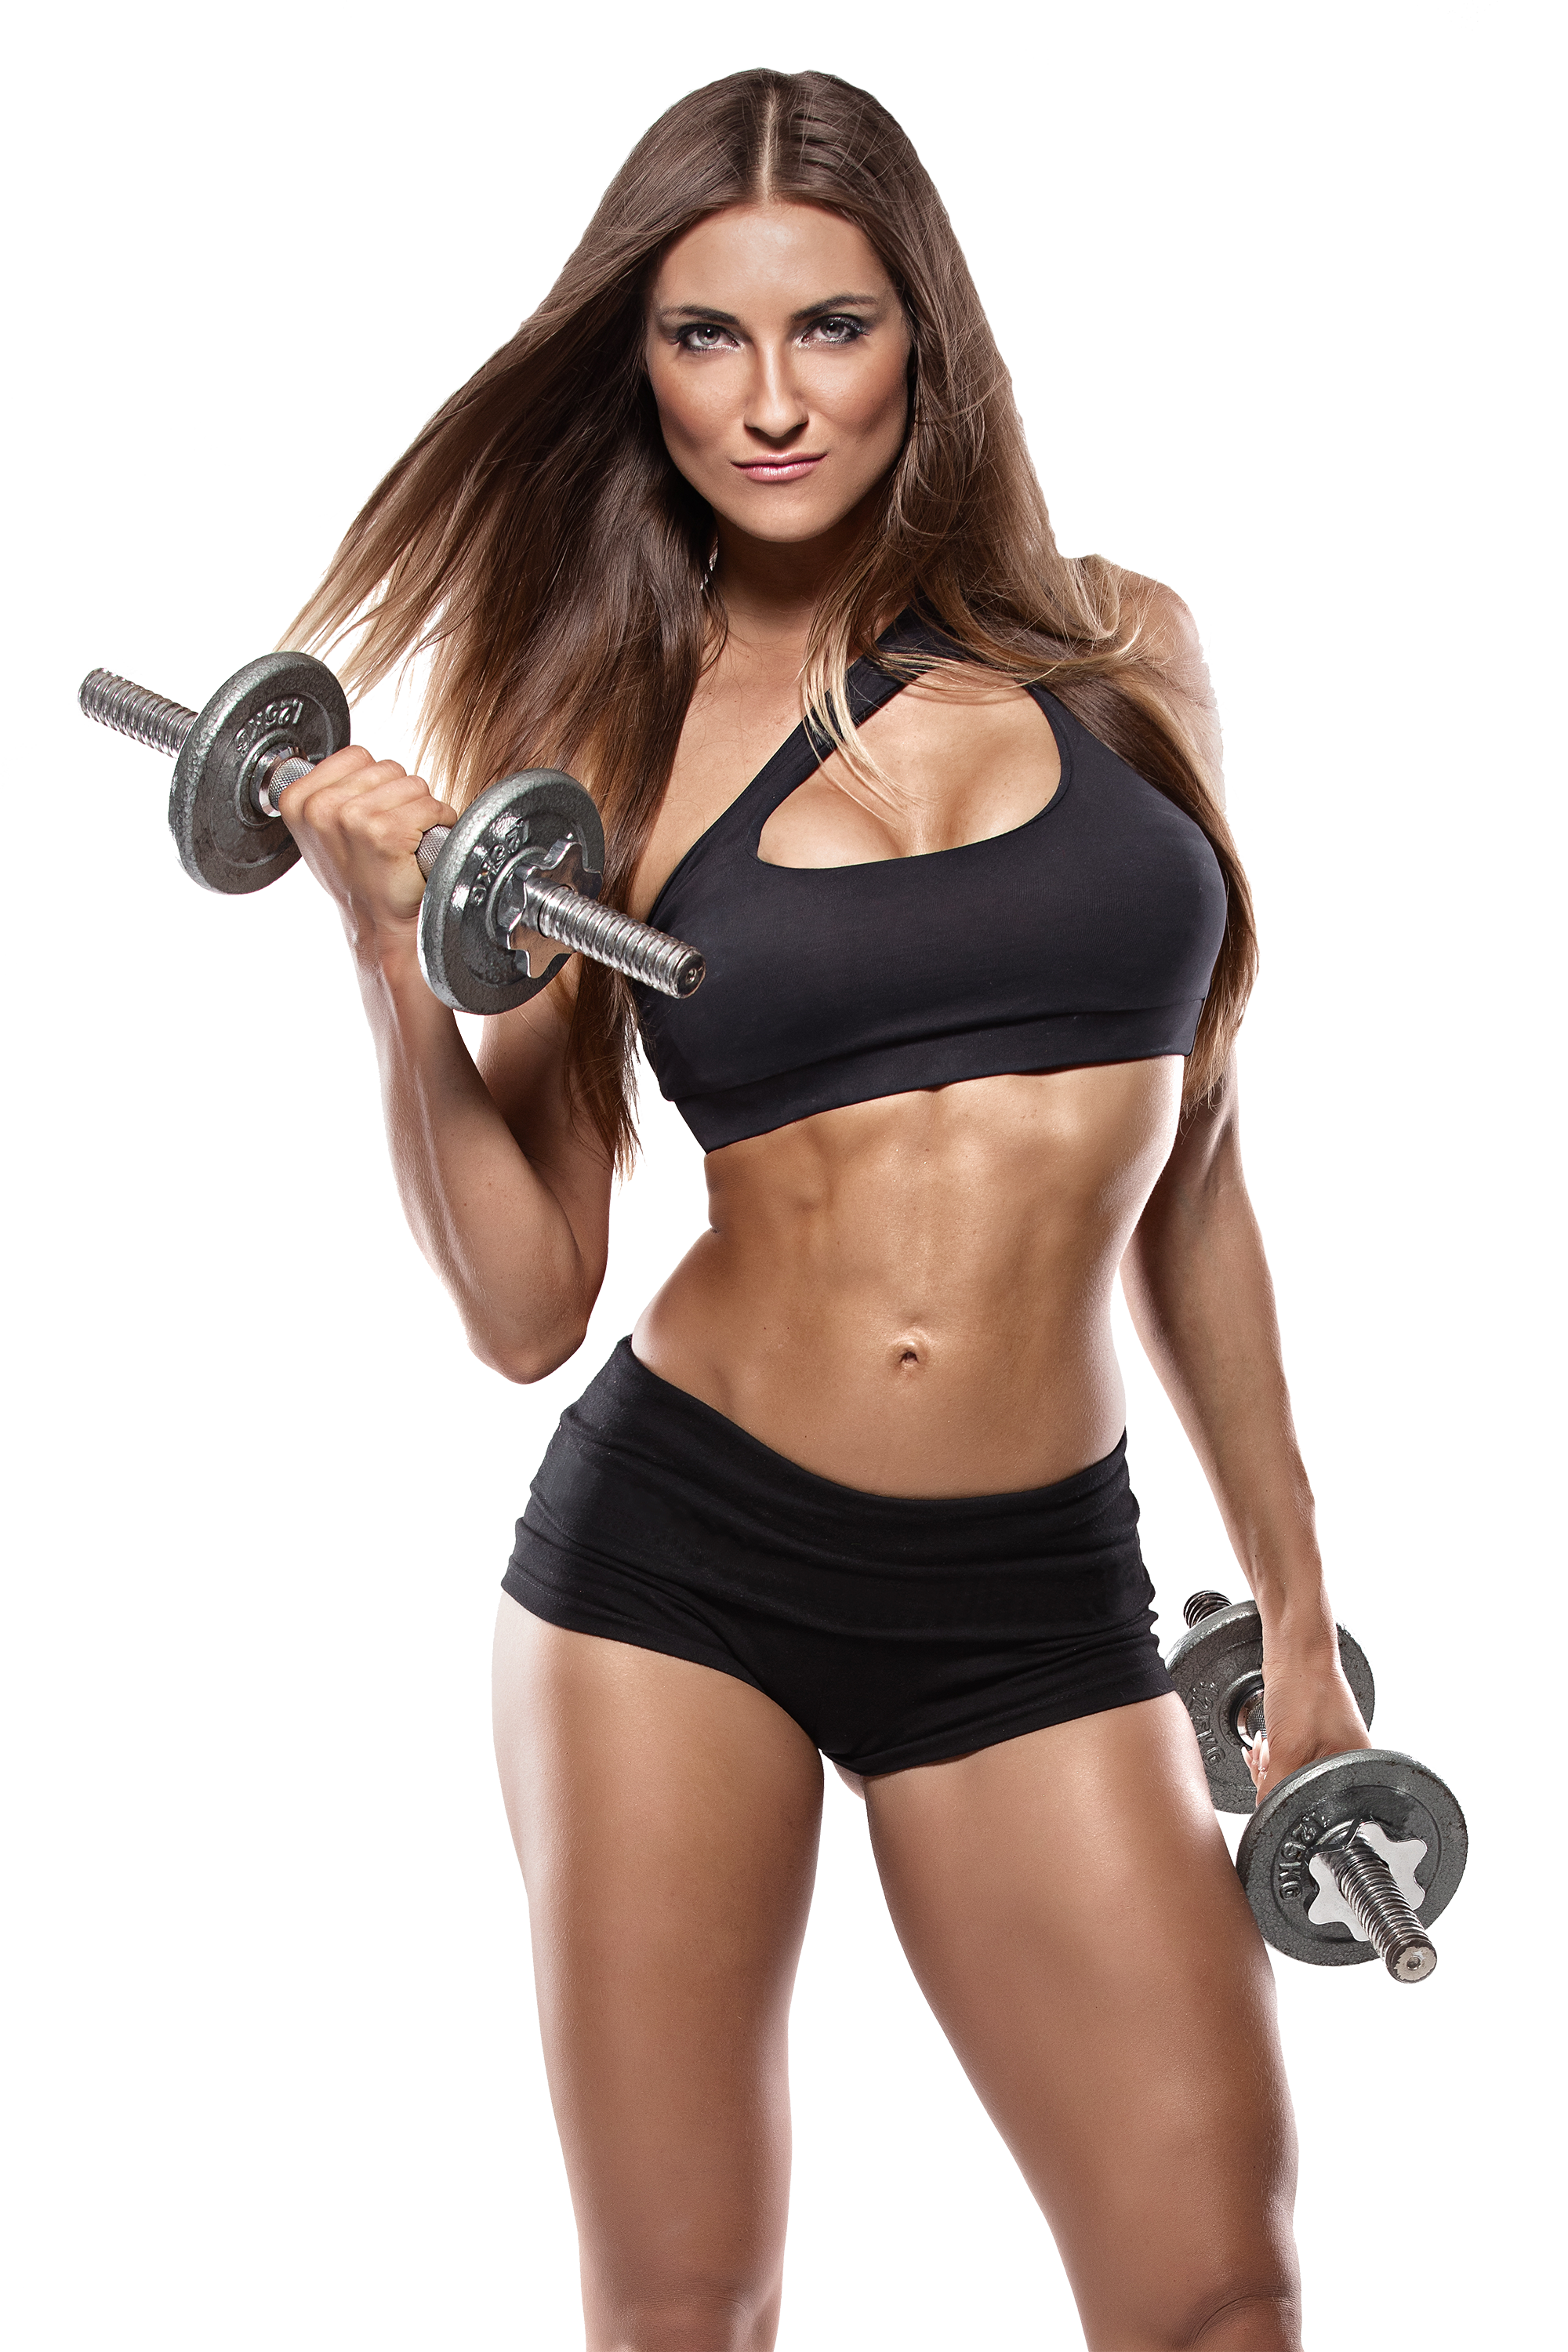 Fitness girl png. Amsmart example get fit